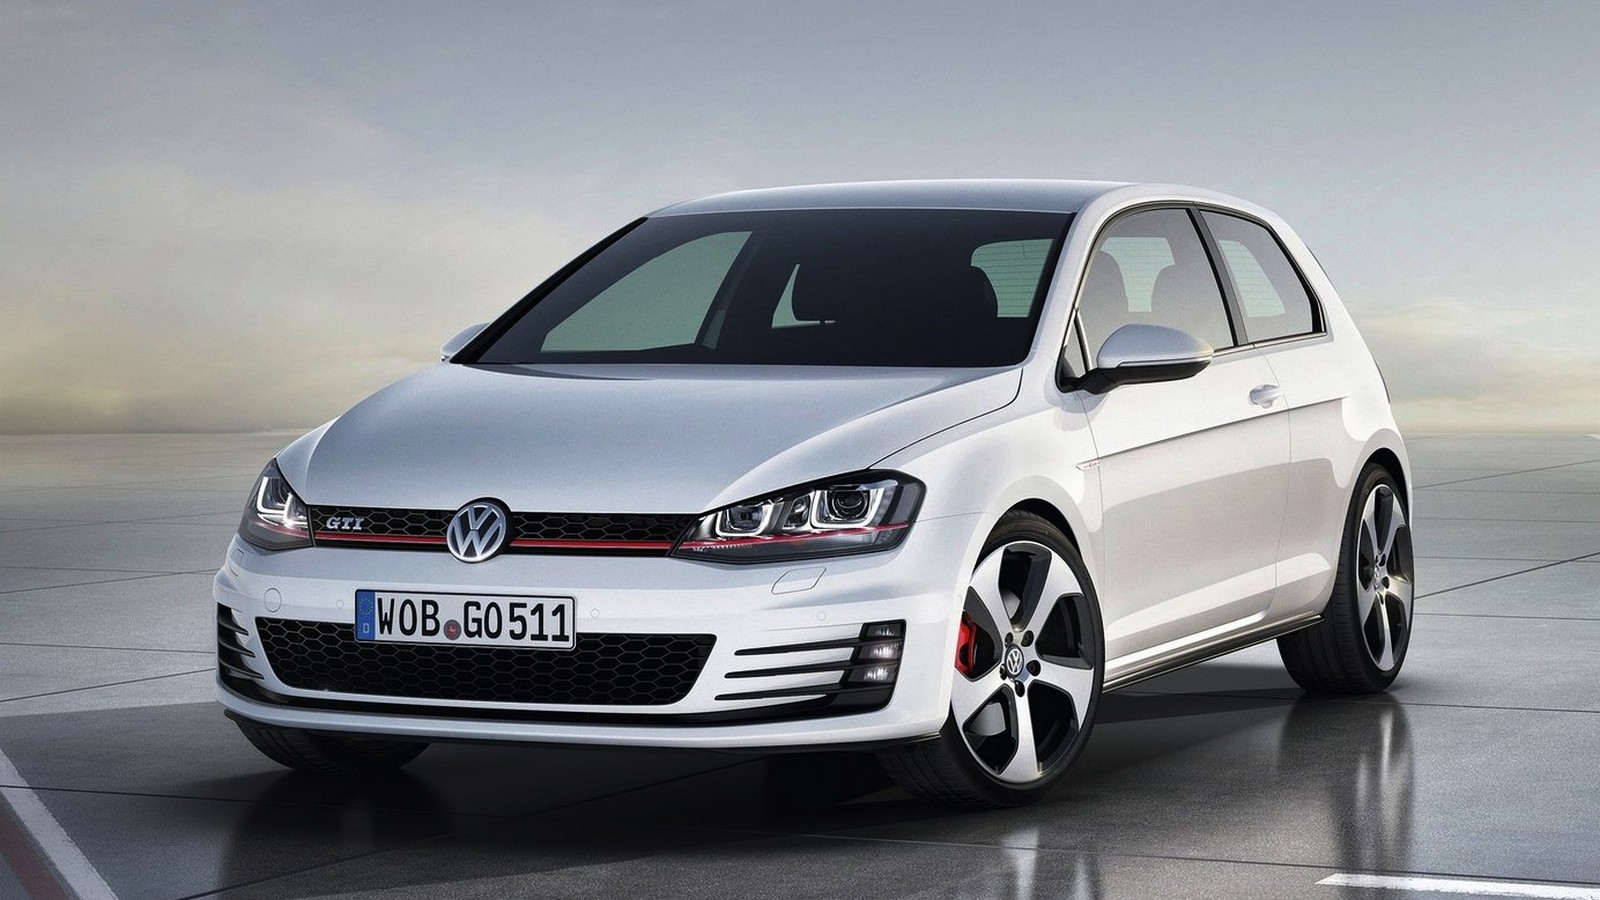 2019 Volkswagen Gol photo - 4